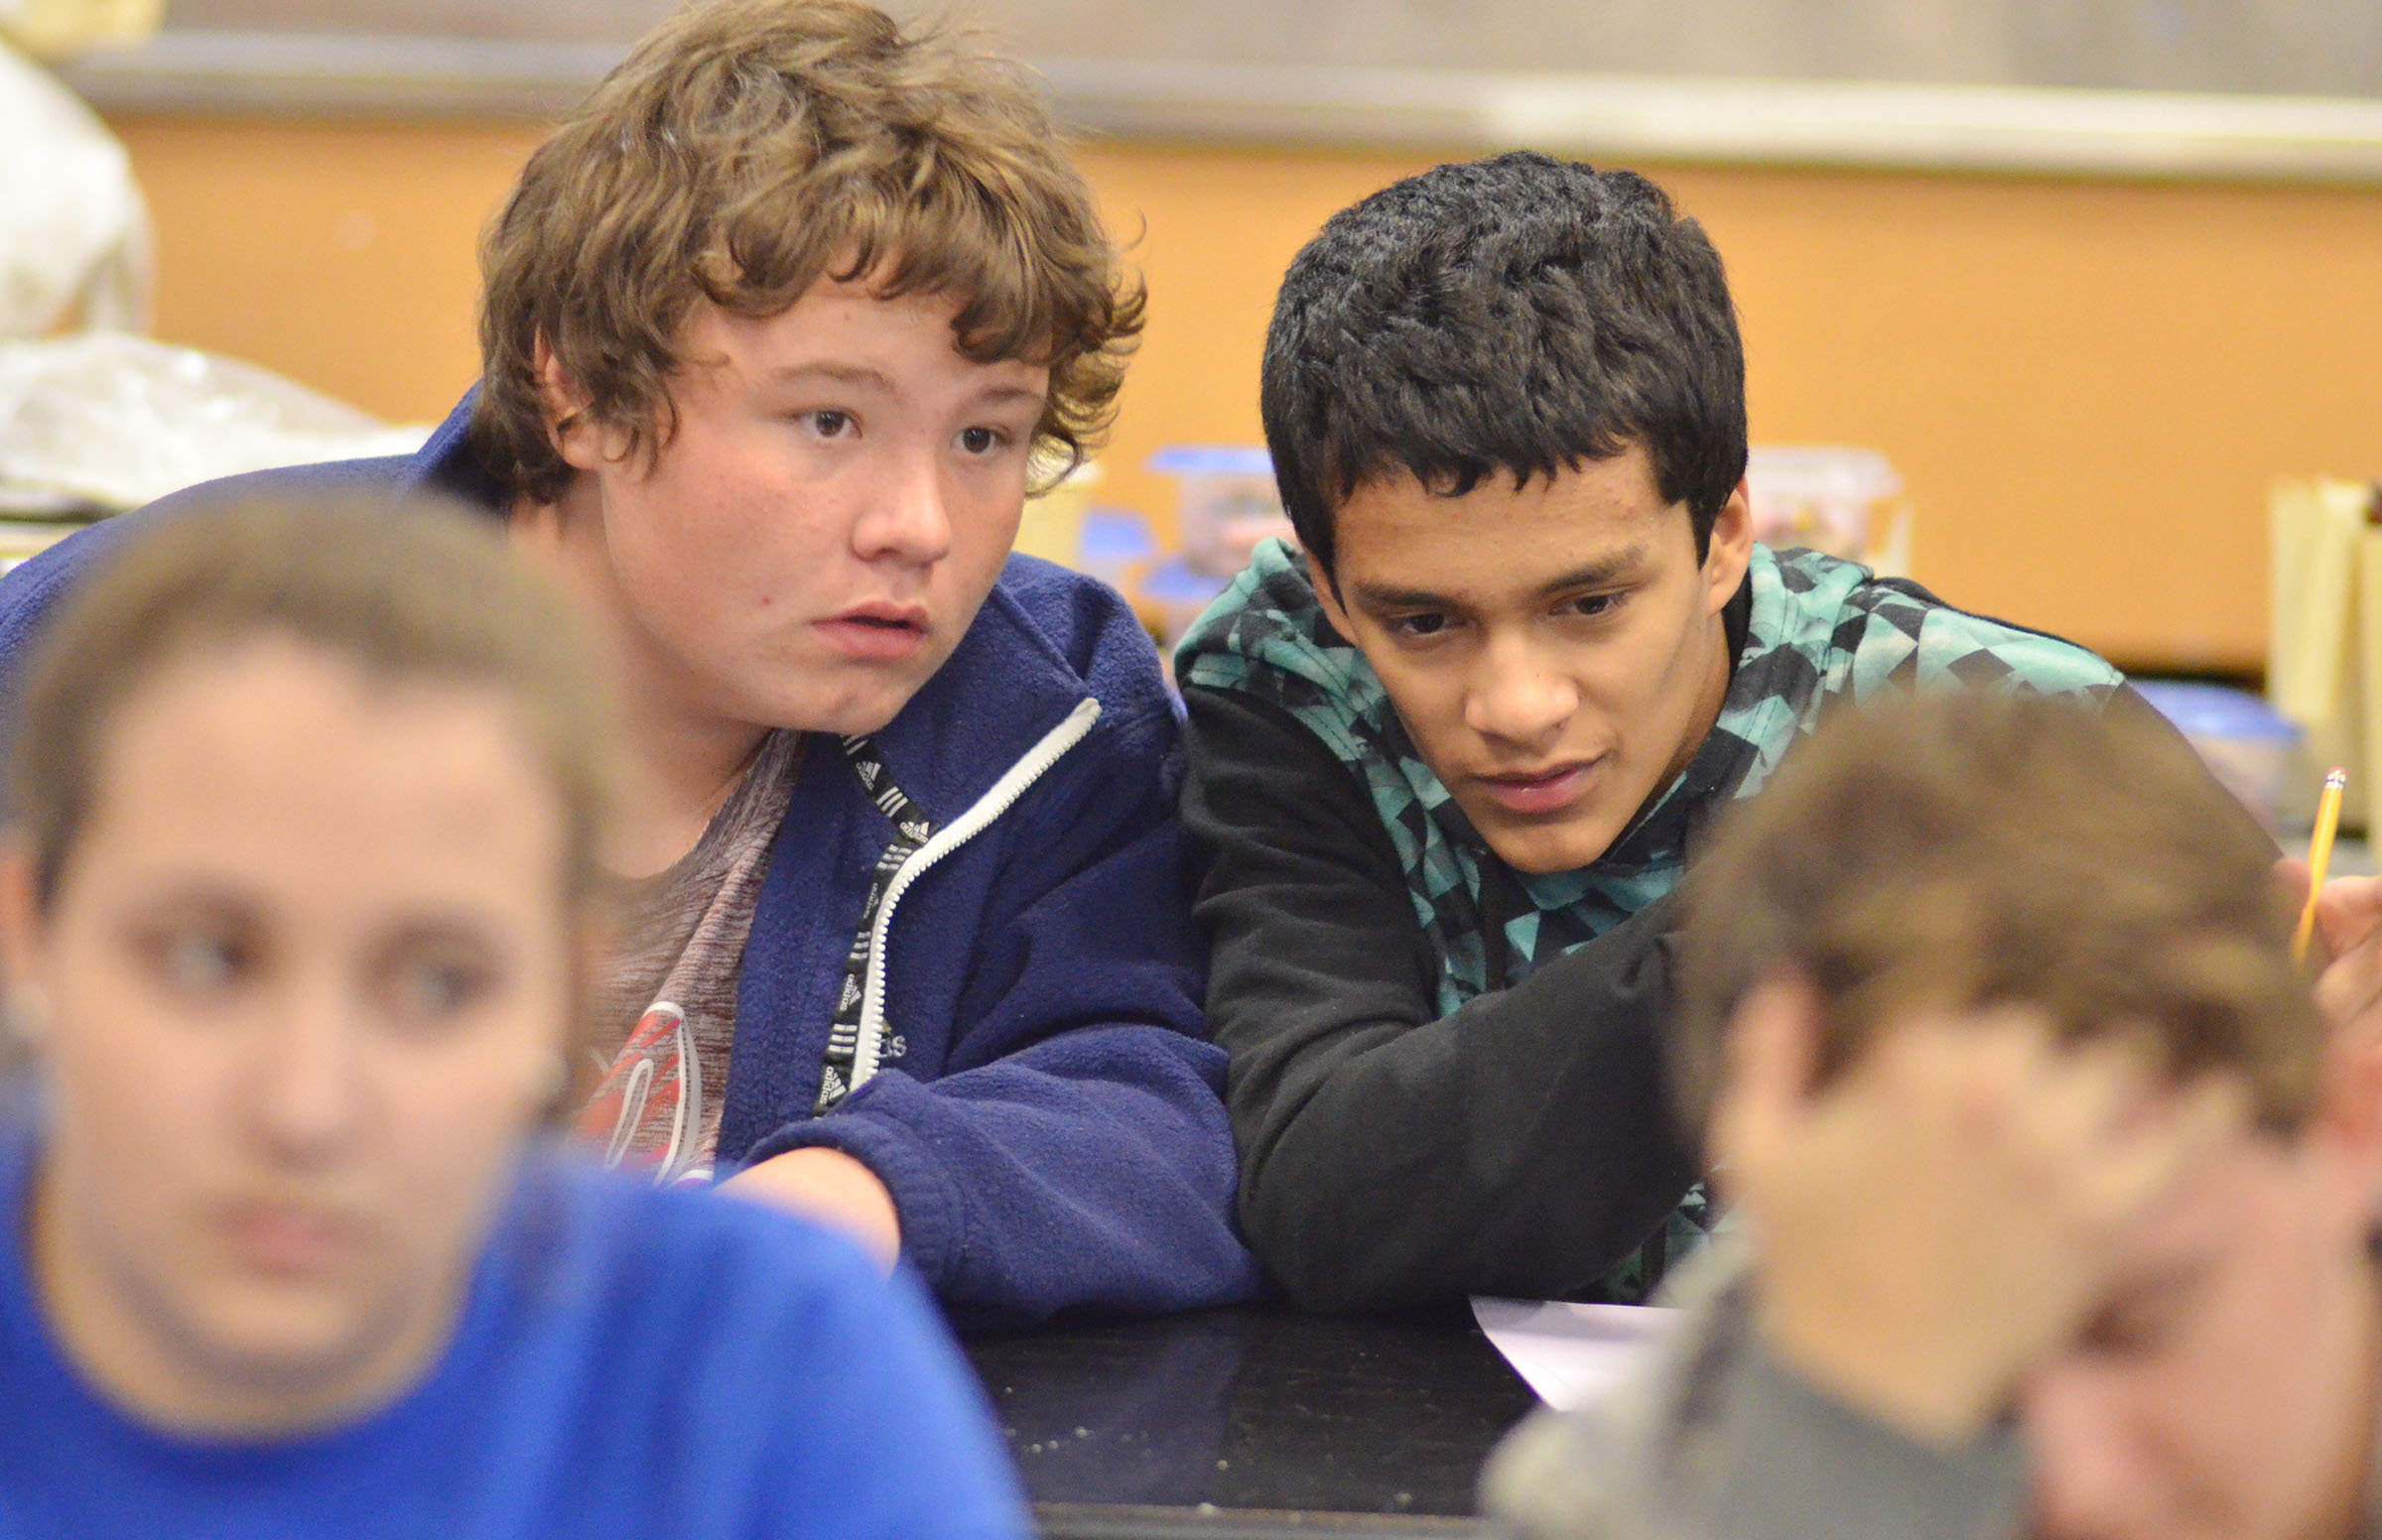 CHS freshmen Conner Riley, at left, and Ben Arachi discuss a question as their teammates listen to it.